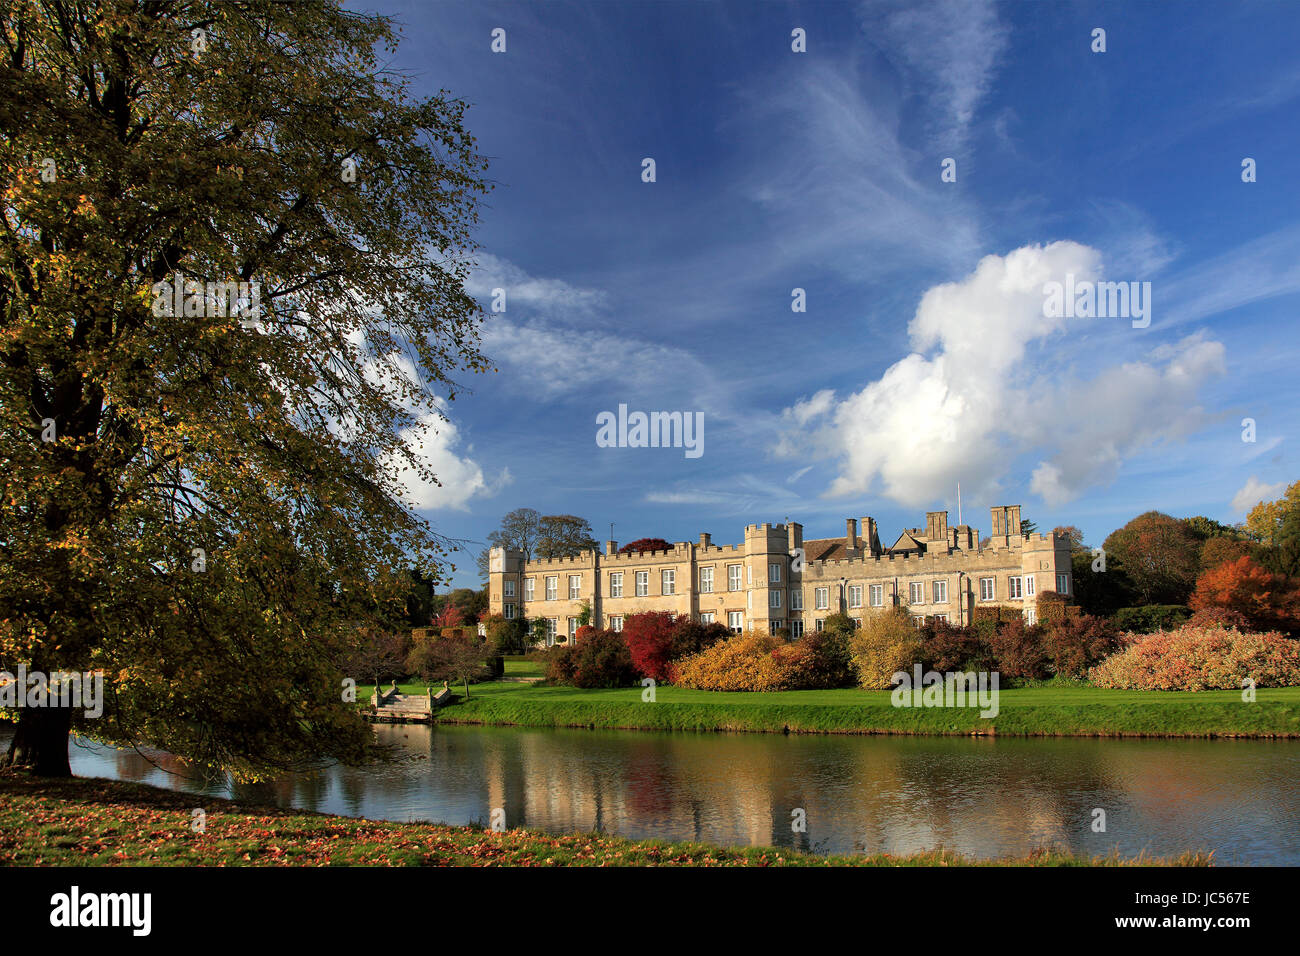 The house at Deene Park the seat of the Brudenell family since 1514, near Corby, Northamptonshire county, England - Stock Image